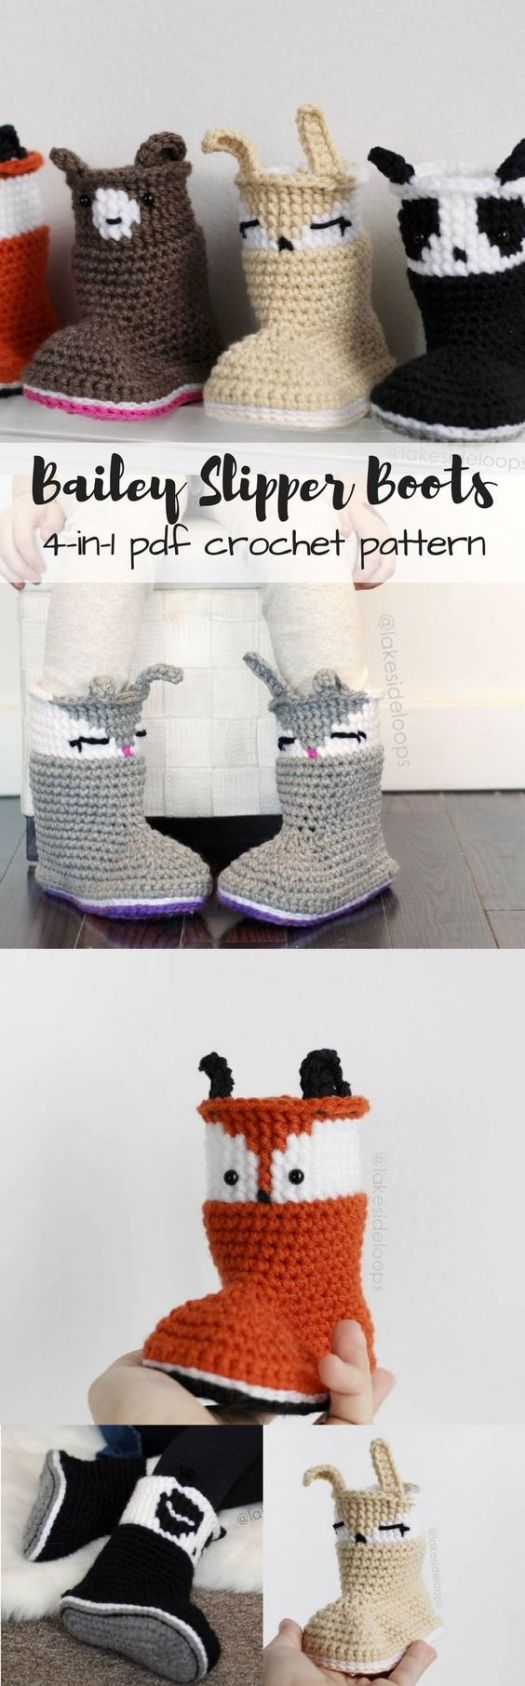 Bailey Slipper Boots in toddler and child sizes. Simple to crochet adorable little booties that any child would love to wear! I love the fox ones! #crochet #pattern #slippers #booties #crafts #yarn #crochetpattern #diy #craftevangelist